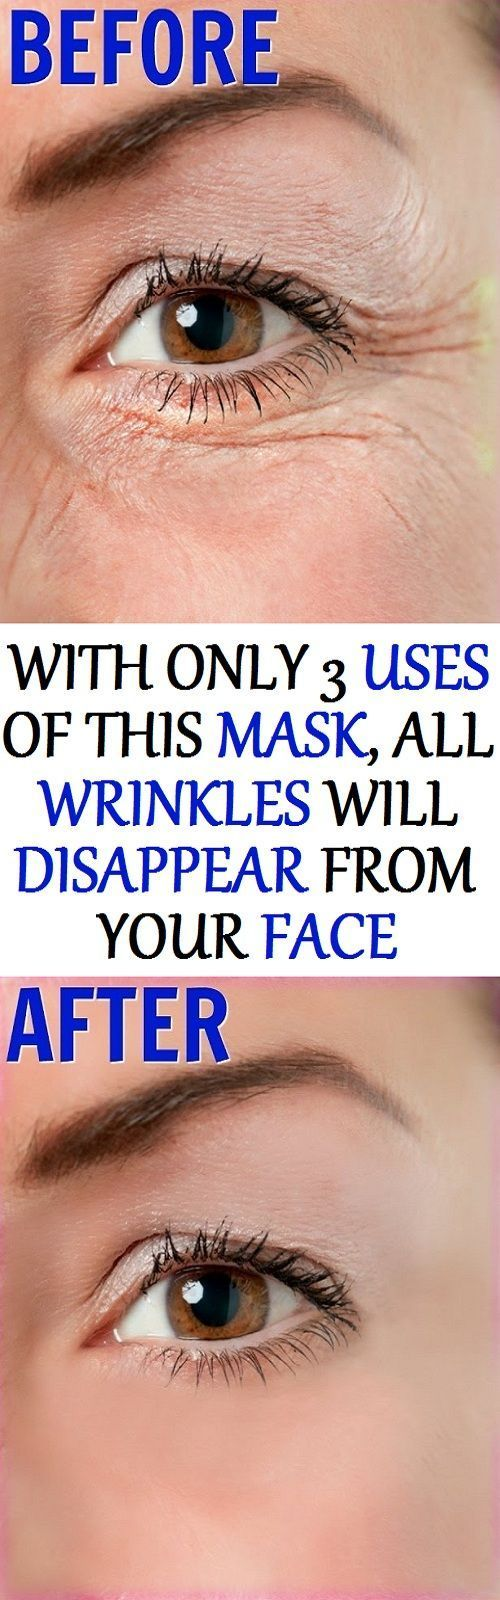 best health u care images on pinterest home remedies beauty